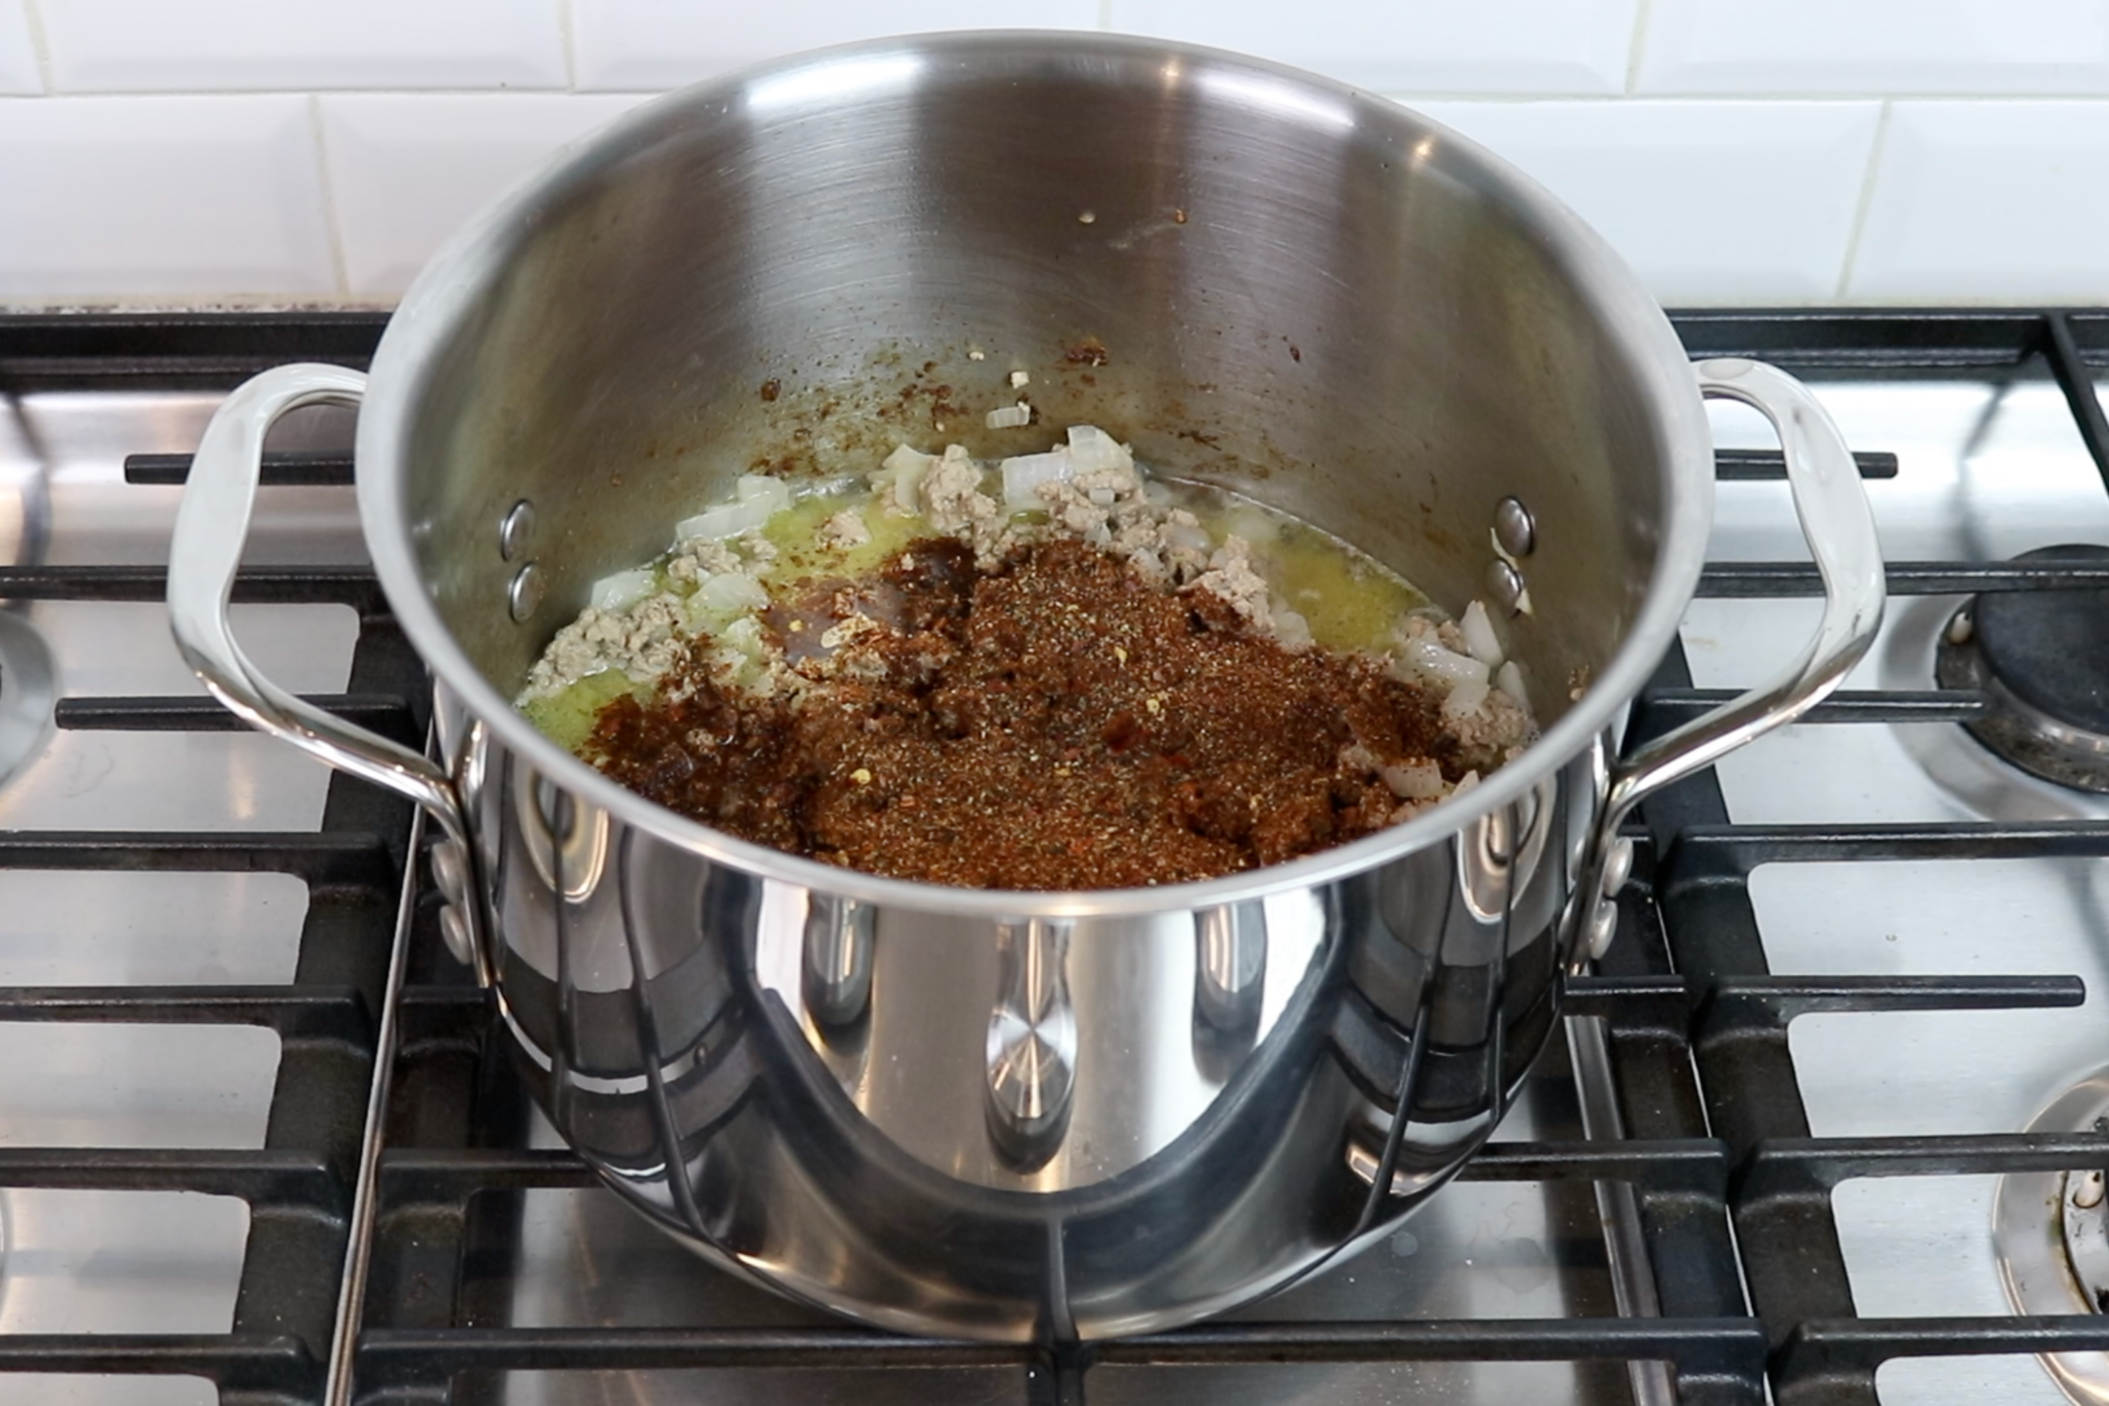 4. Turn stove to medium and add the water and chili seasoning mix. Bring to a boil. -